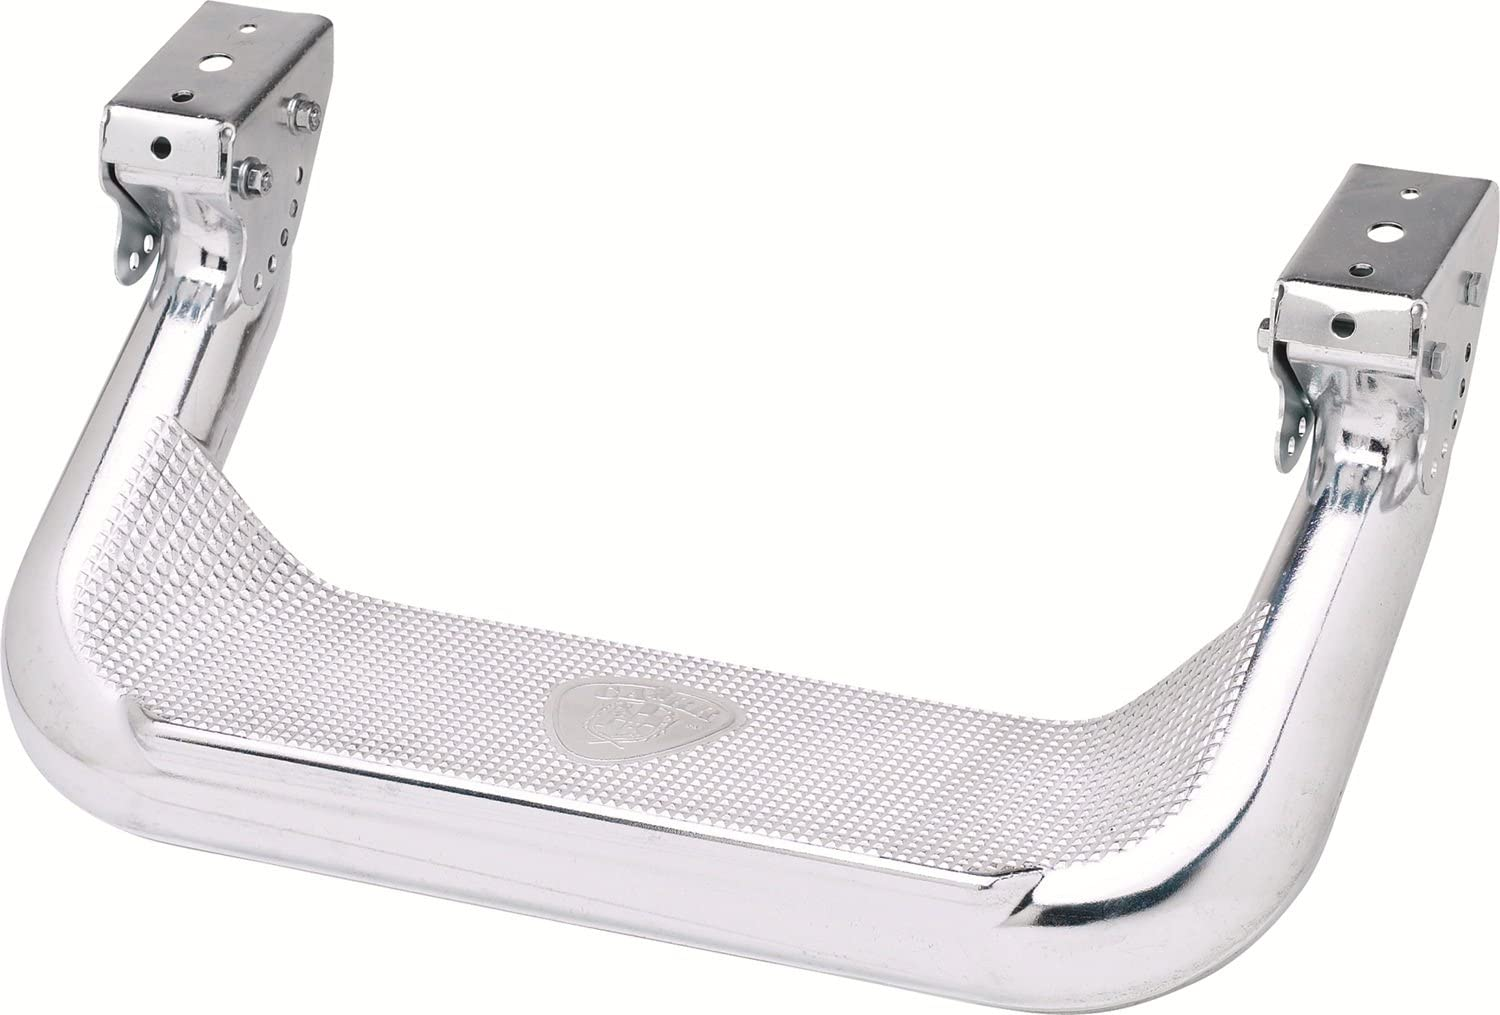 Carr 124032-1 Super Hoop Truck Step